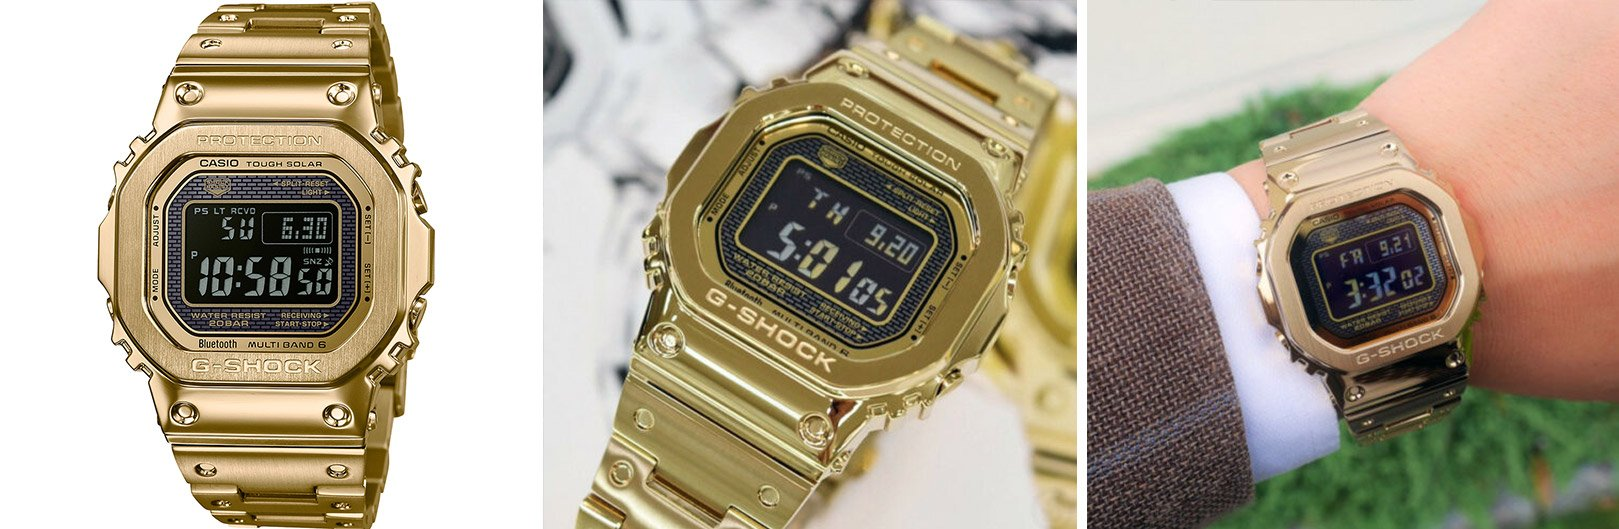 GMWB5000GD-9D from the best G-Shock square watches